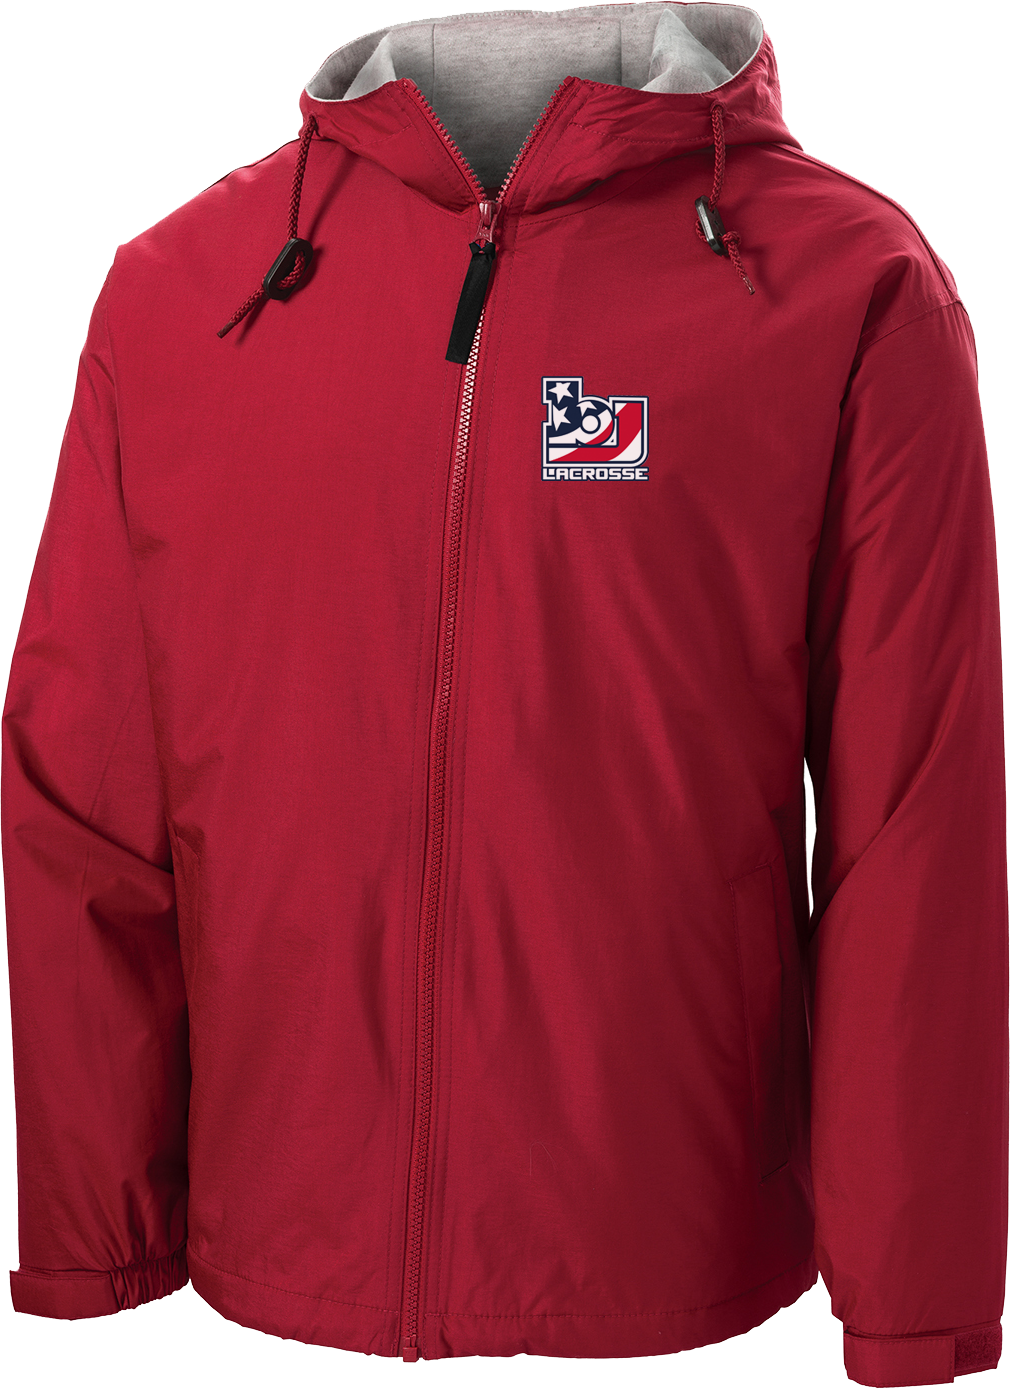 Bob Jones Lacrosse Hooded Jacket